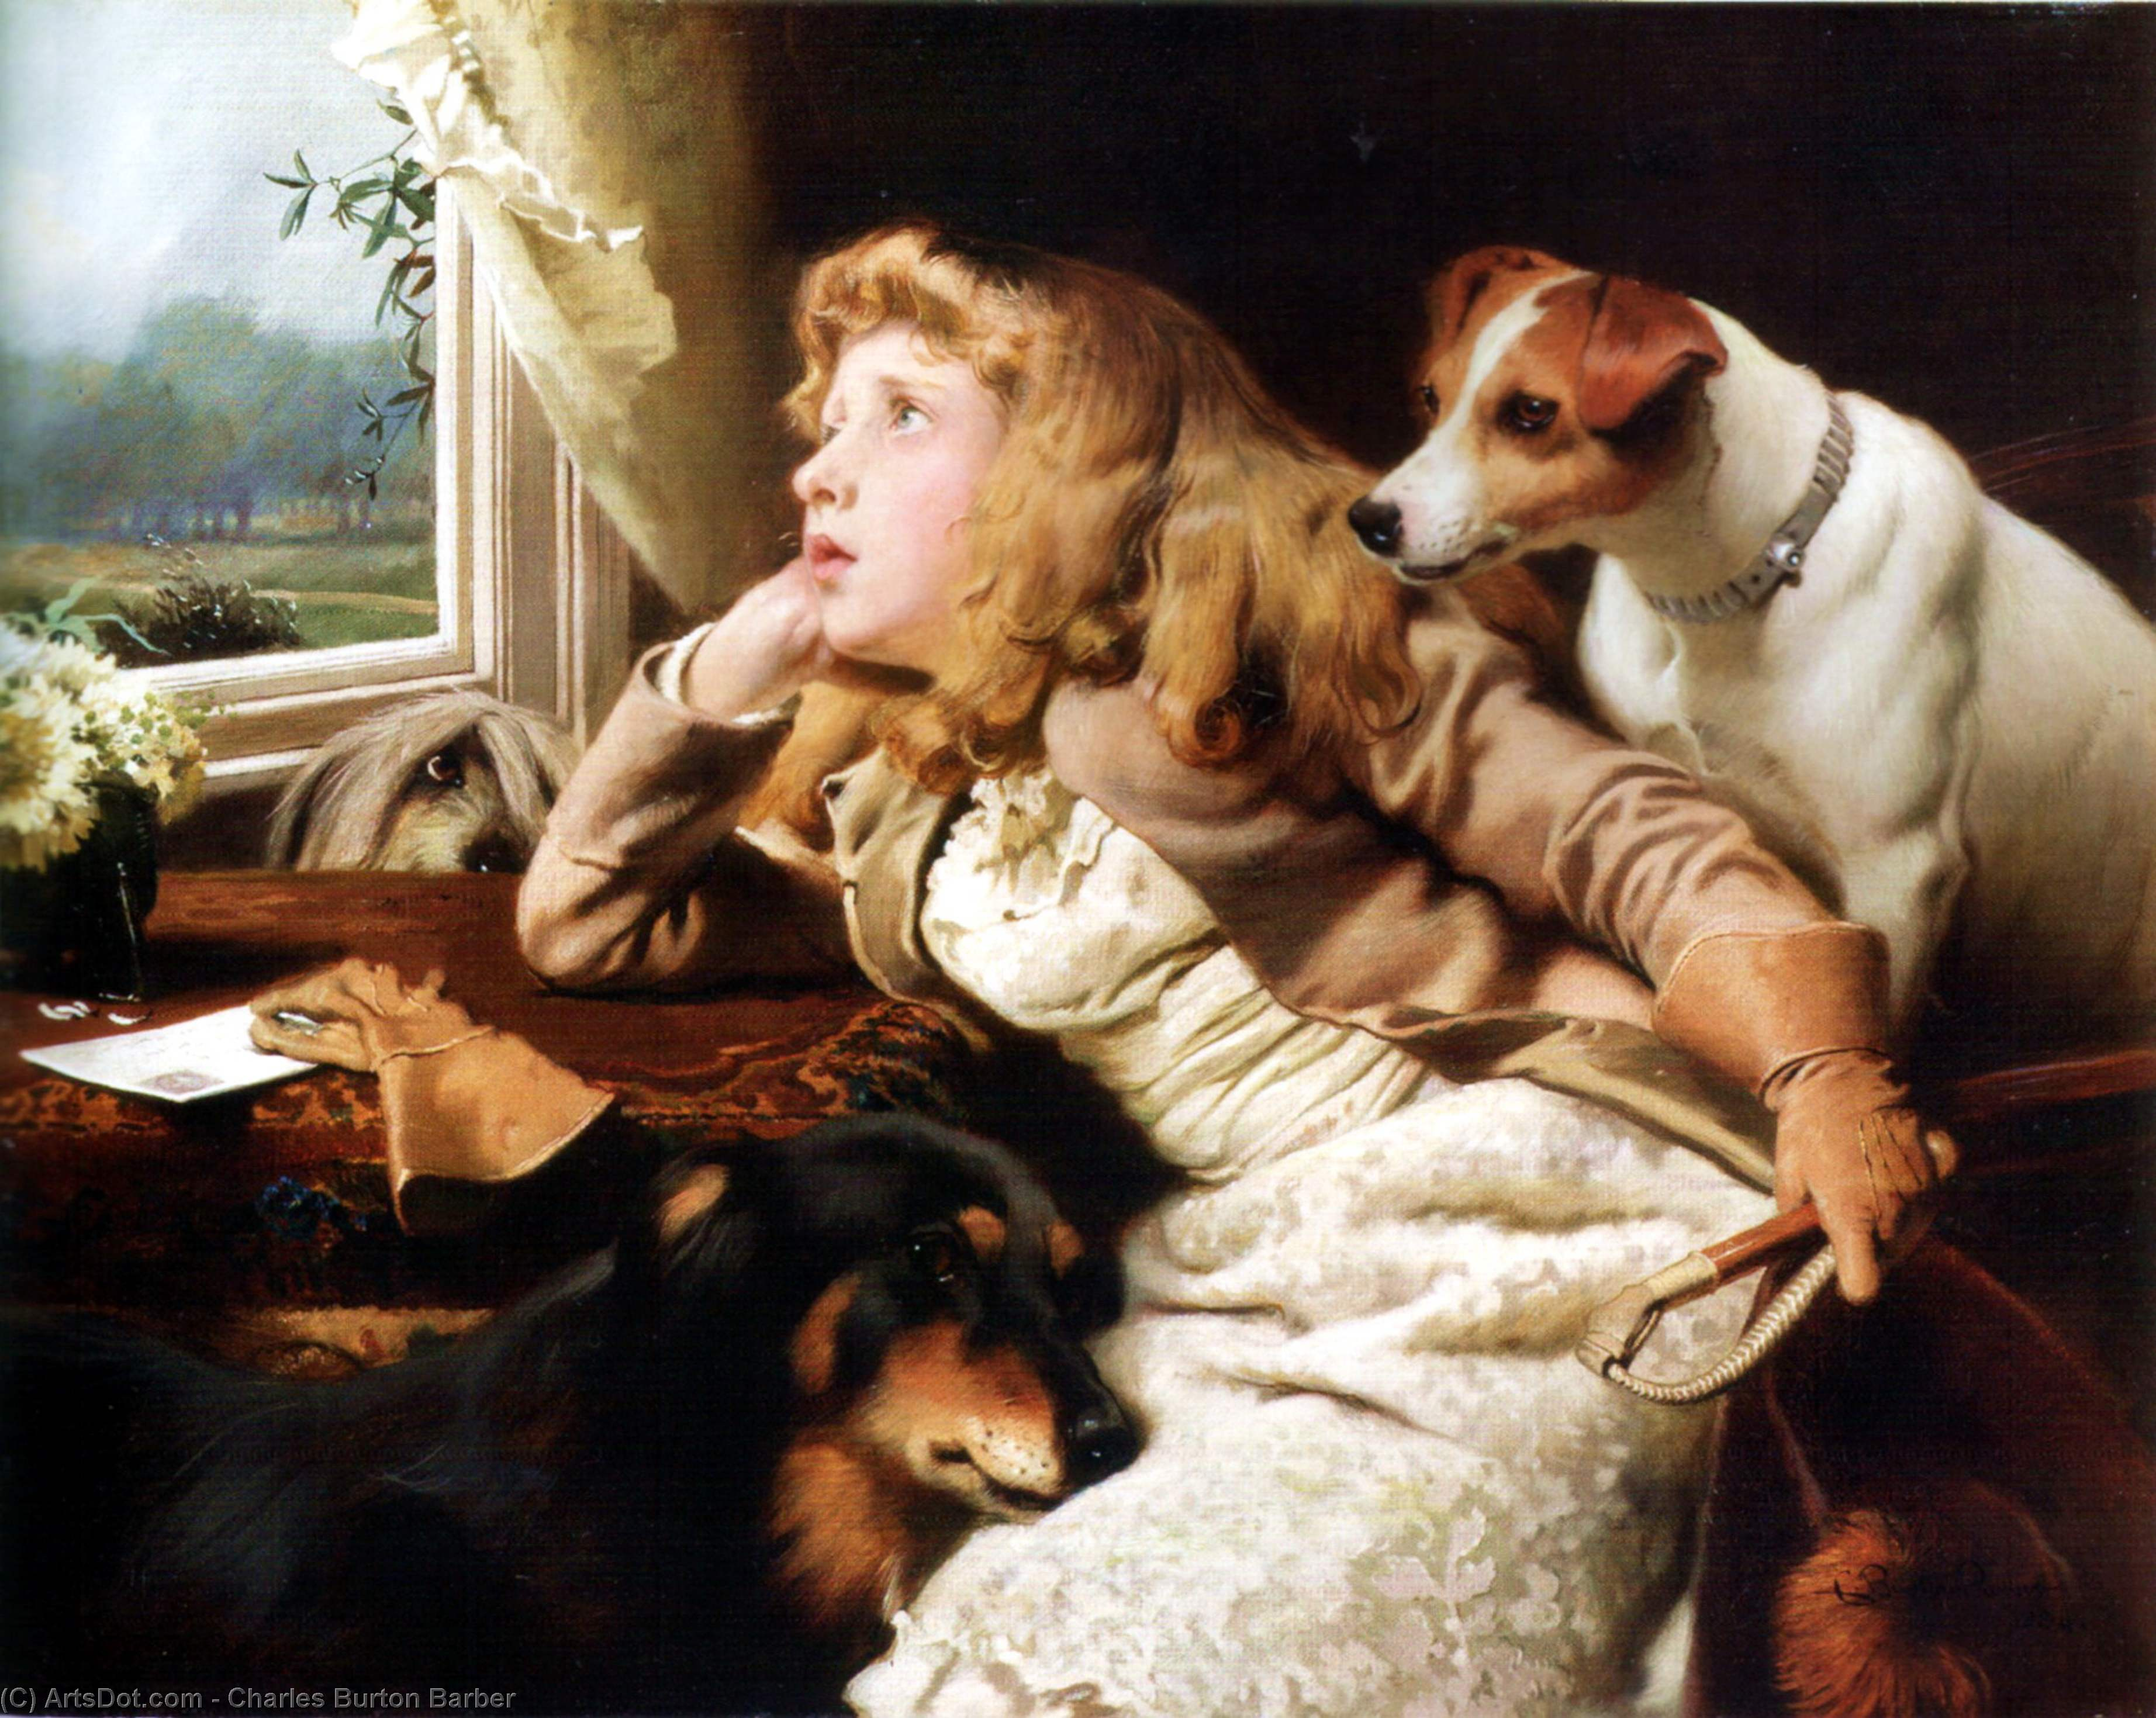 No corsa  oggi  di Charles Burton Barber (1845-1894, United Kingdom) | Copia Pittura | ArtsDot.com